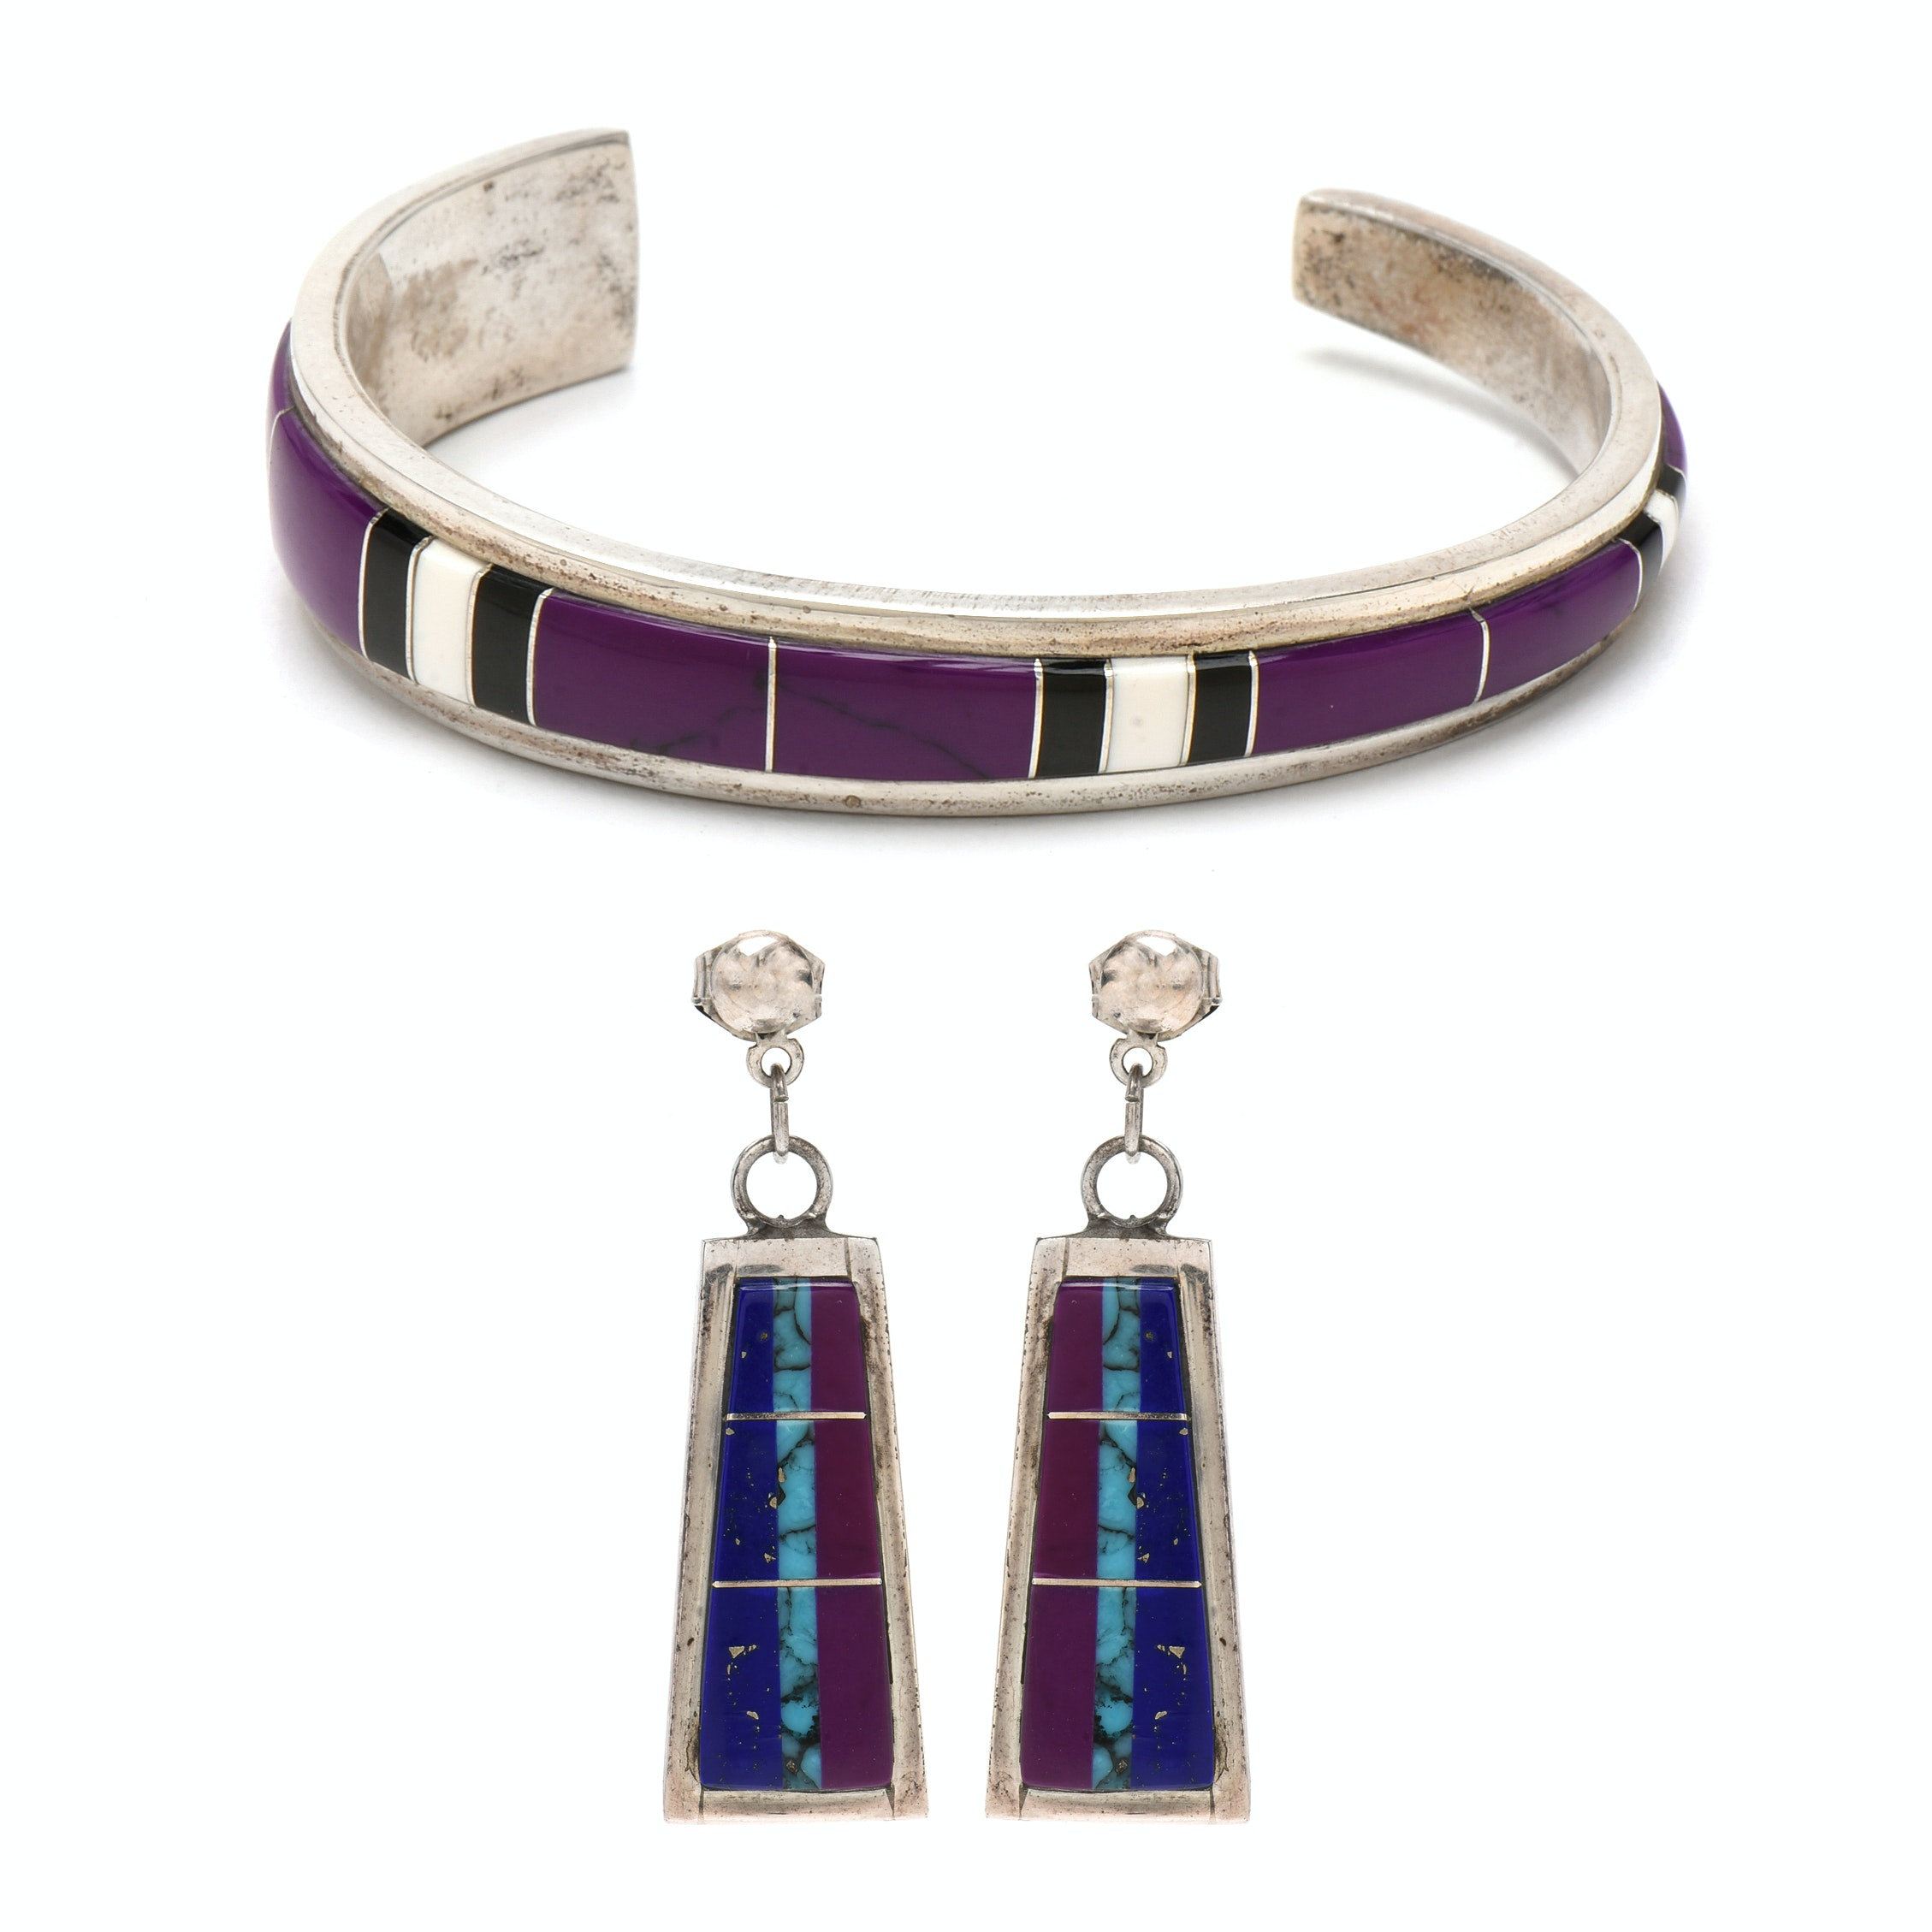 Sterling Silver Inlaid Imitation Gemstone Bracelet and Earrings